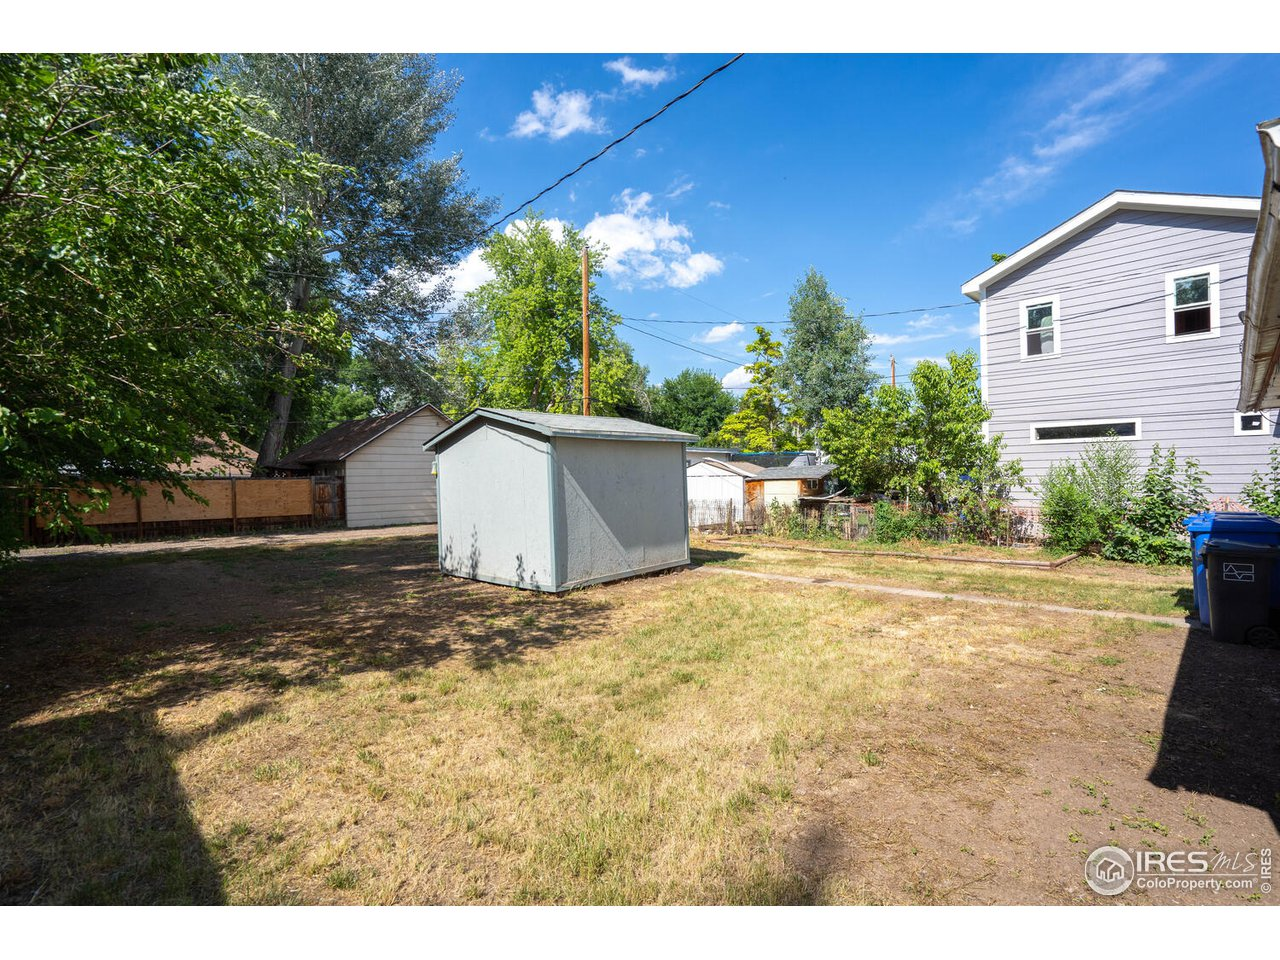 This quaint bungalow is situated on a deep lot with alley access and two storage sheds.